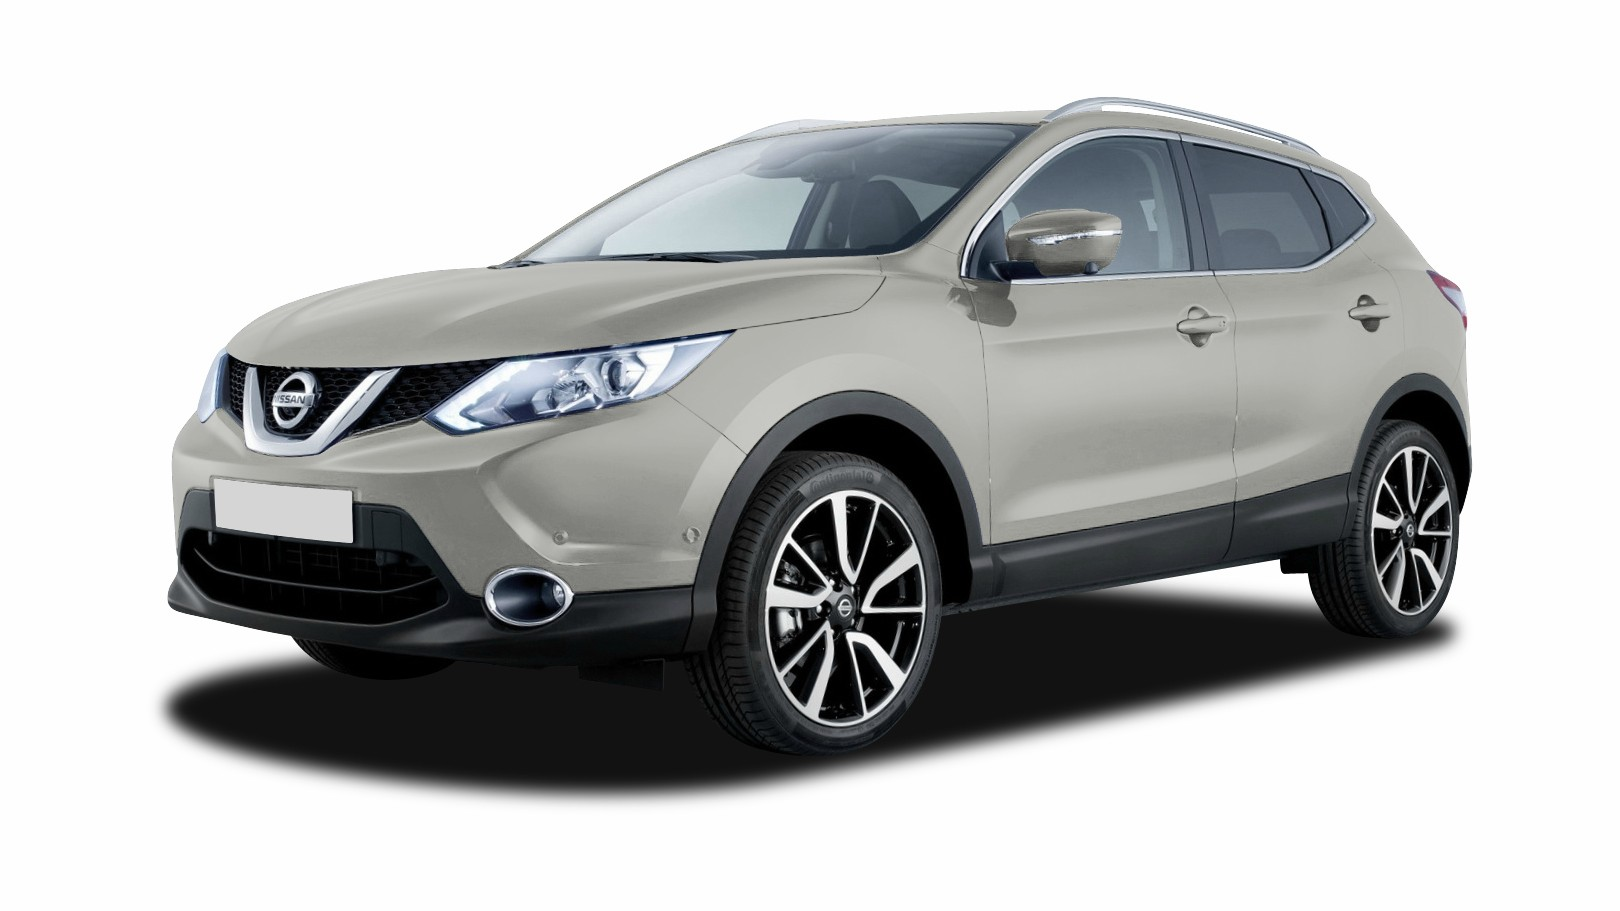 nissan qashqai 4x2 et suv 5 portes diesel 1 6 dci. Black Bedroom Furniture Sets. Home Design Ideas